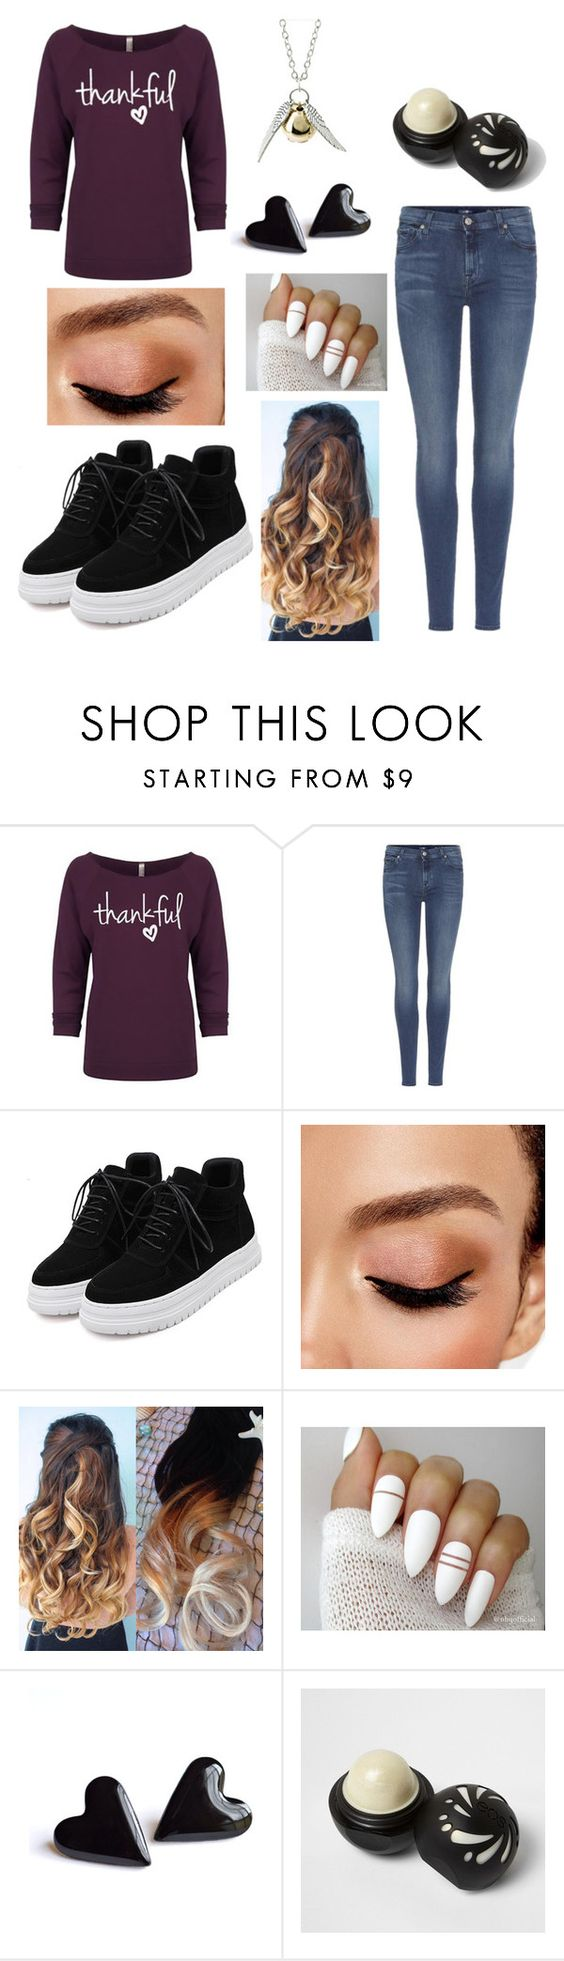 """""""Untitled #73"""" by life-sucks4664 ❤ liked on Polyvore featuring 7 For All Mankind, WithChic, Avon, River Island and Quiksilver"""